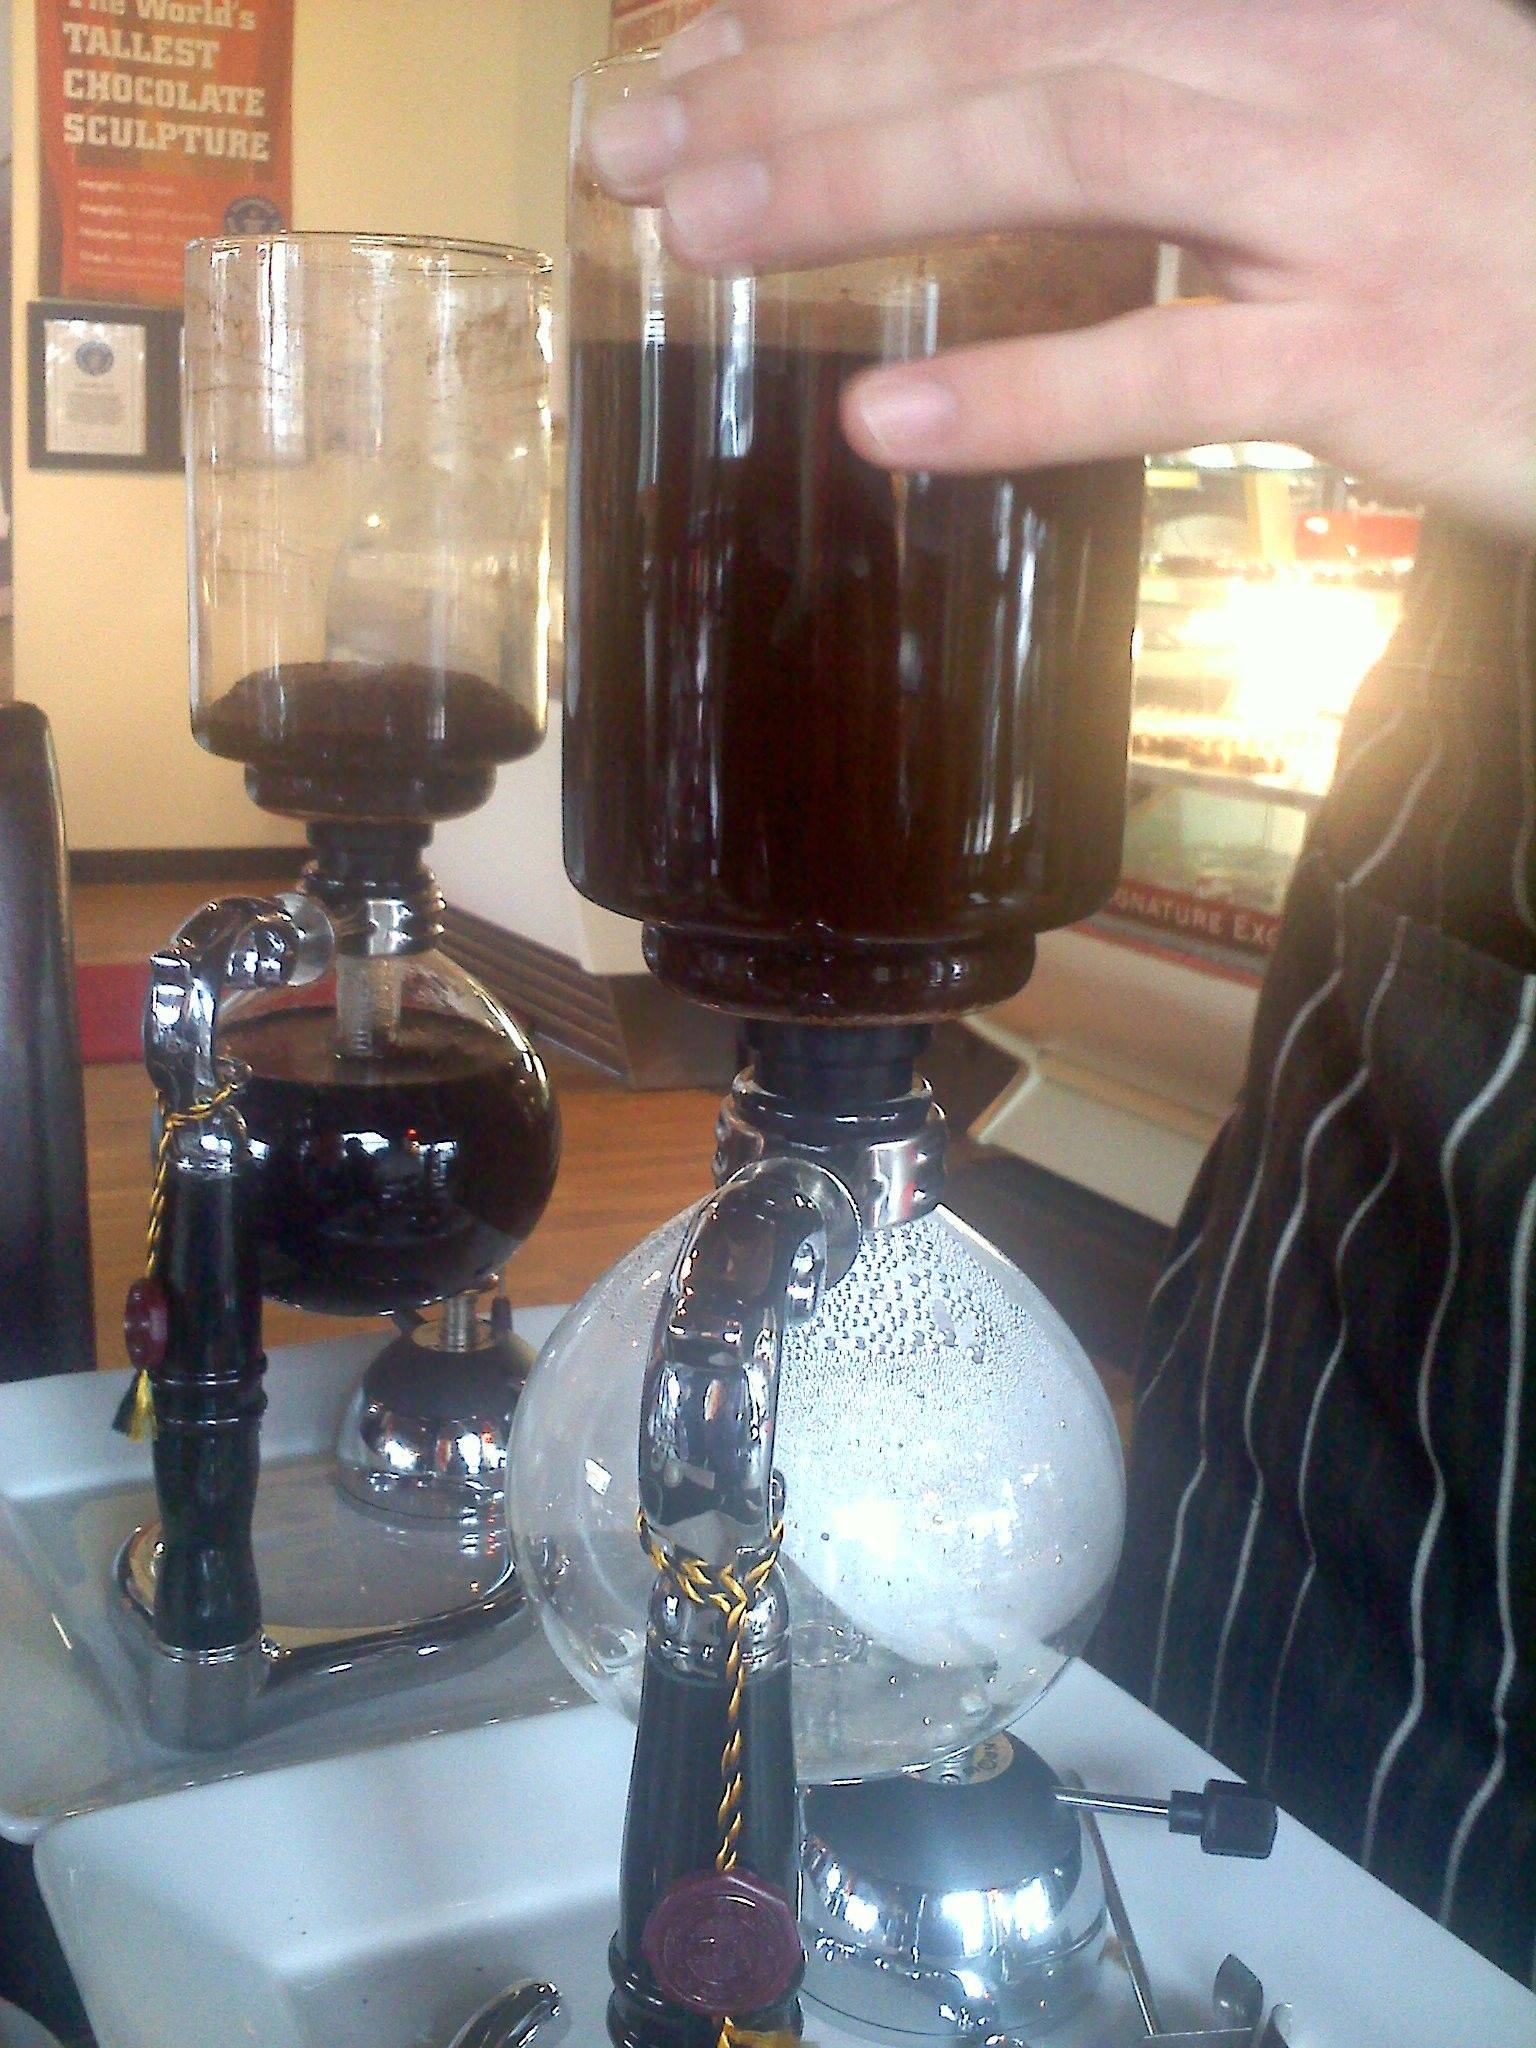 Siphon brewed coffee is available at All Chocolate Kitchen in Geneva.